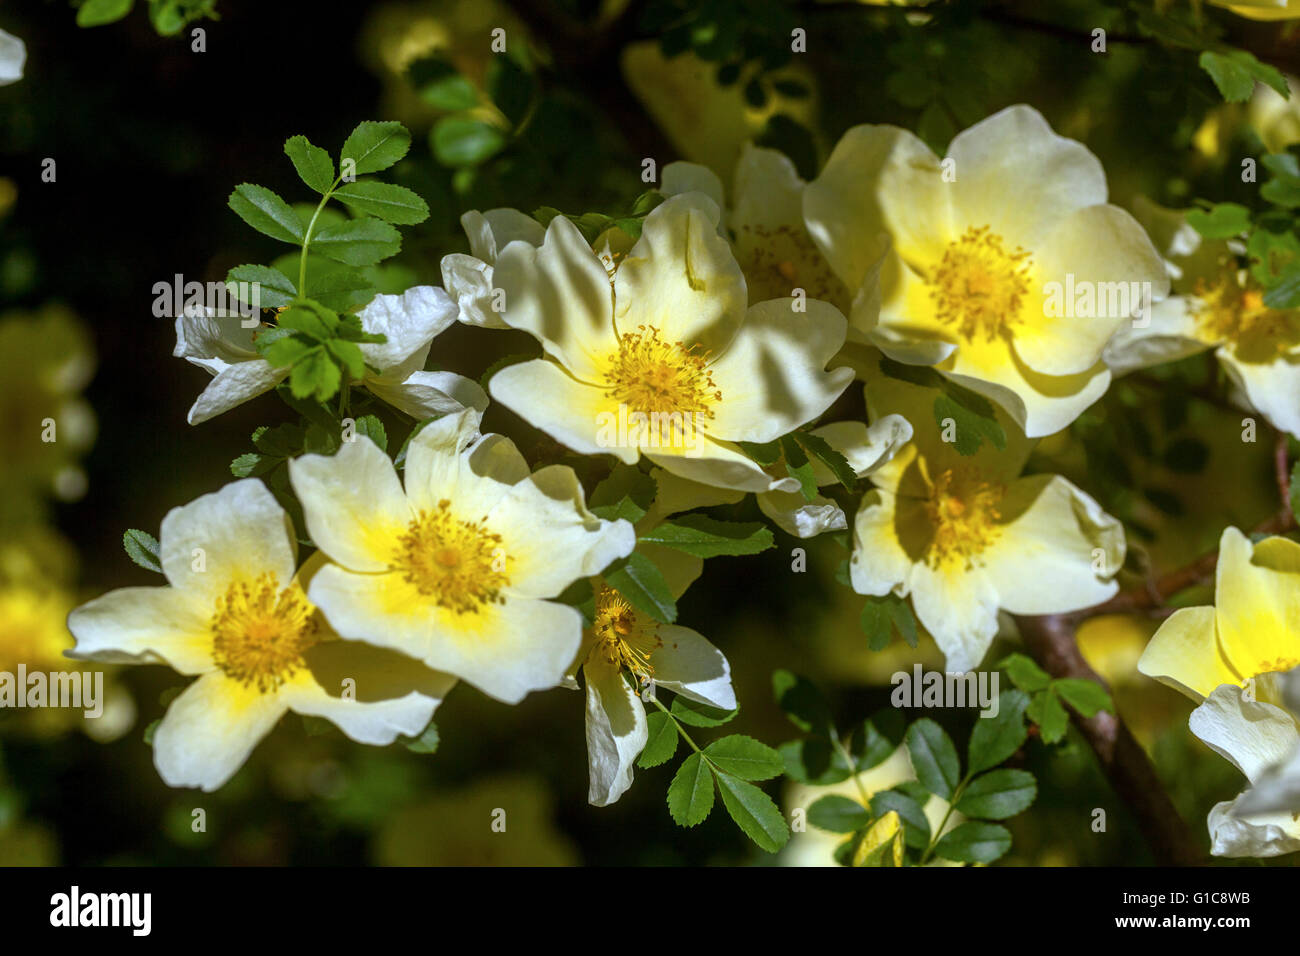 flowering shrub stockfotos flowering shrub bilder alamy. Black Bedroom Furniture Sets. Home Design Ideas